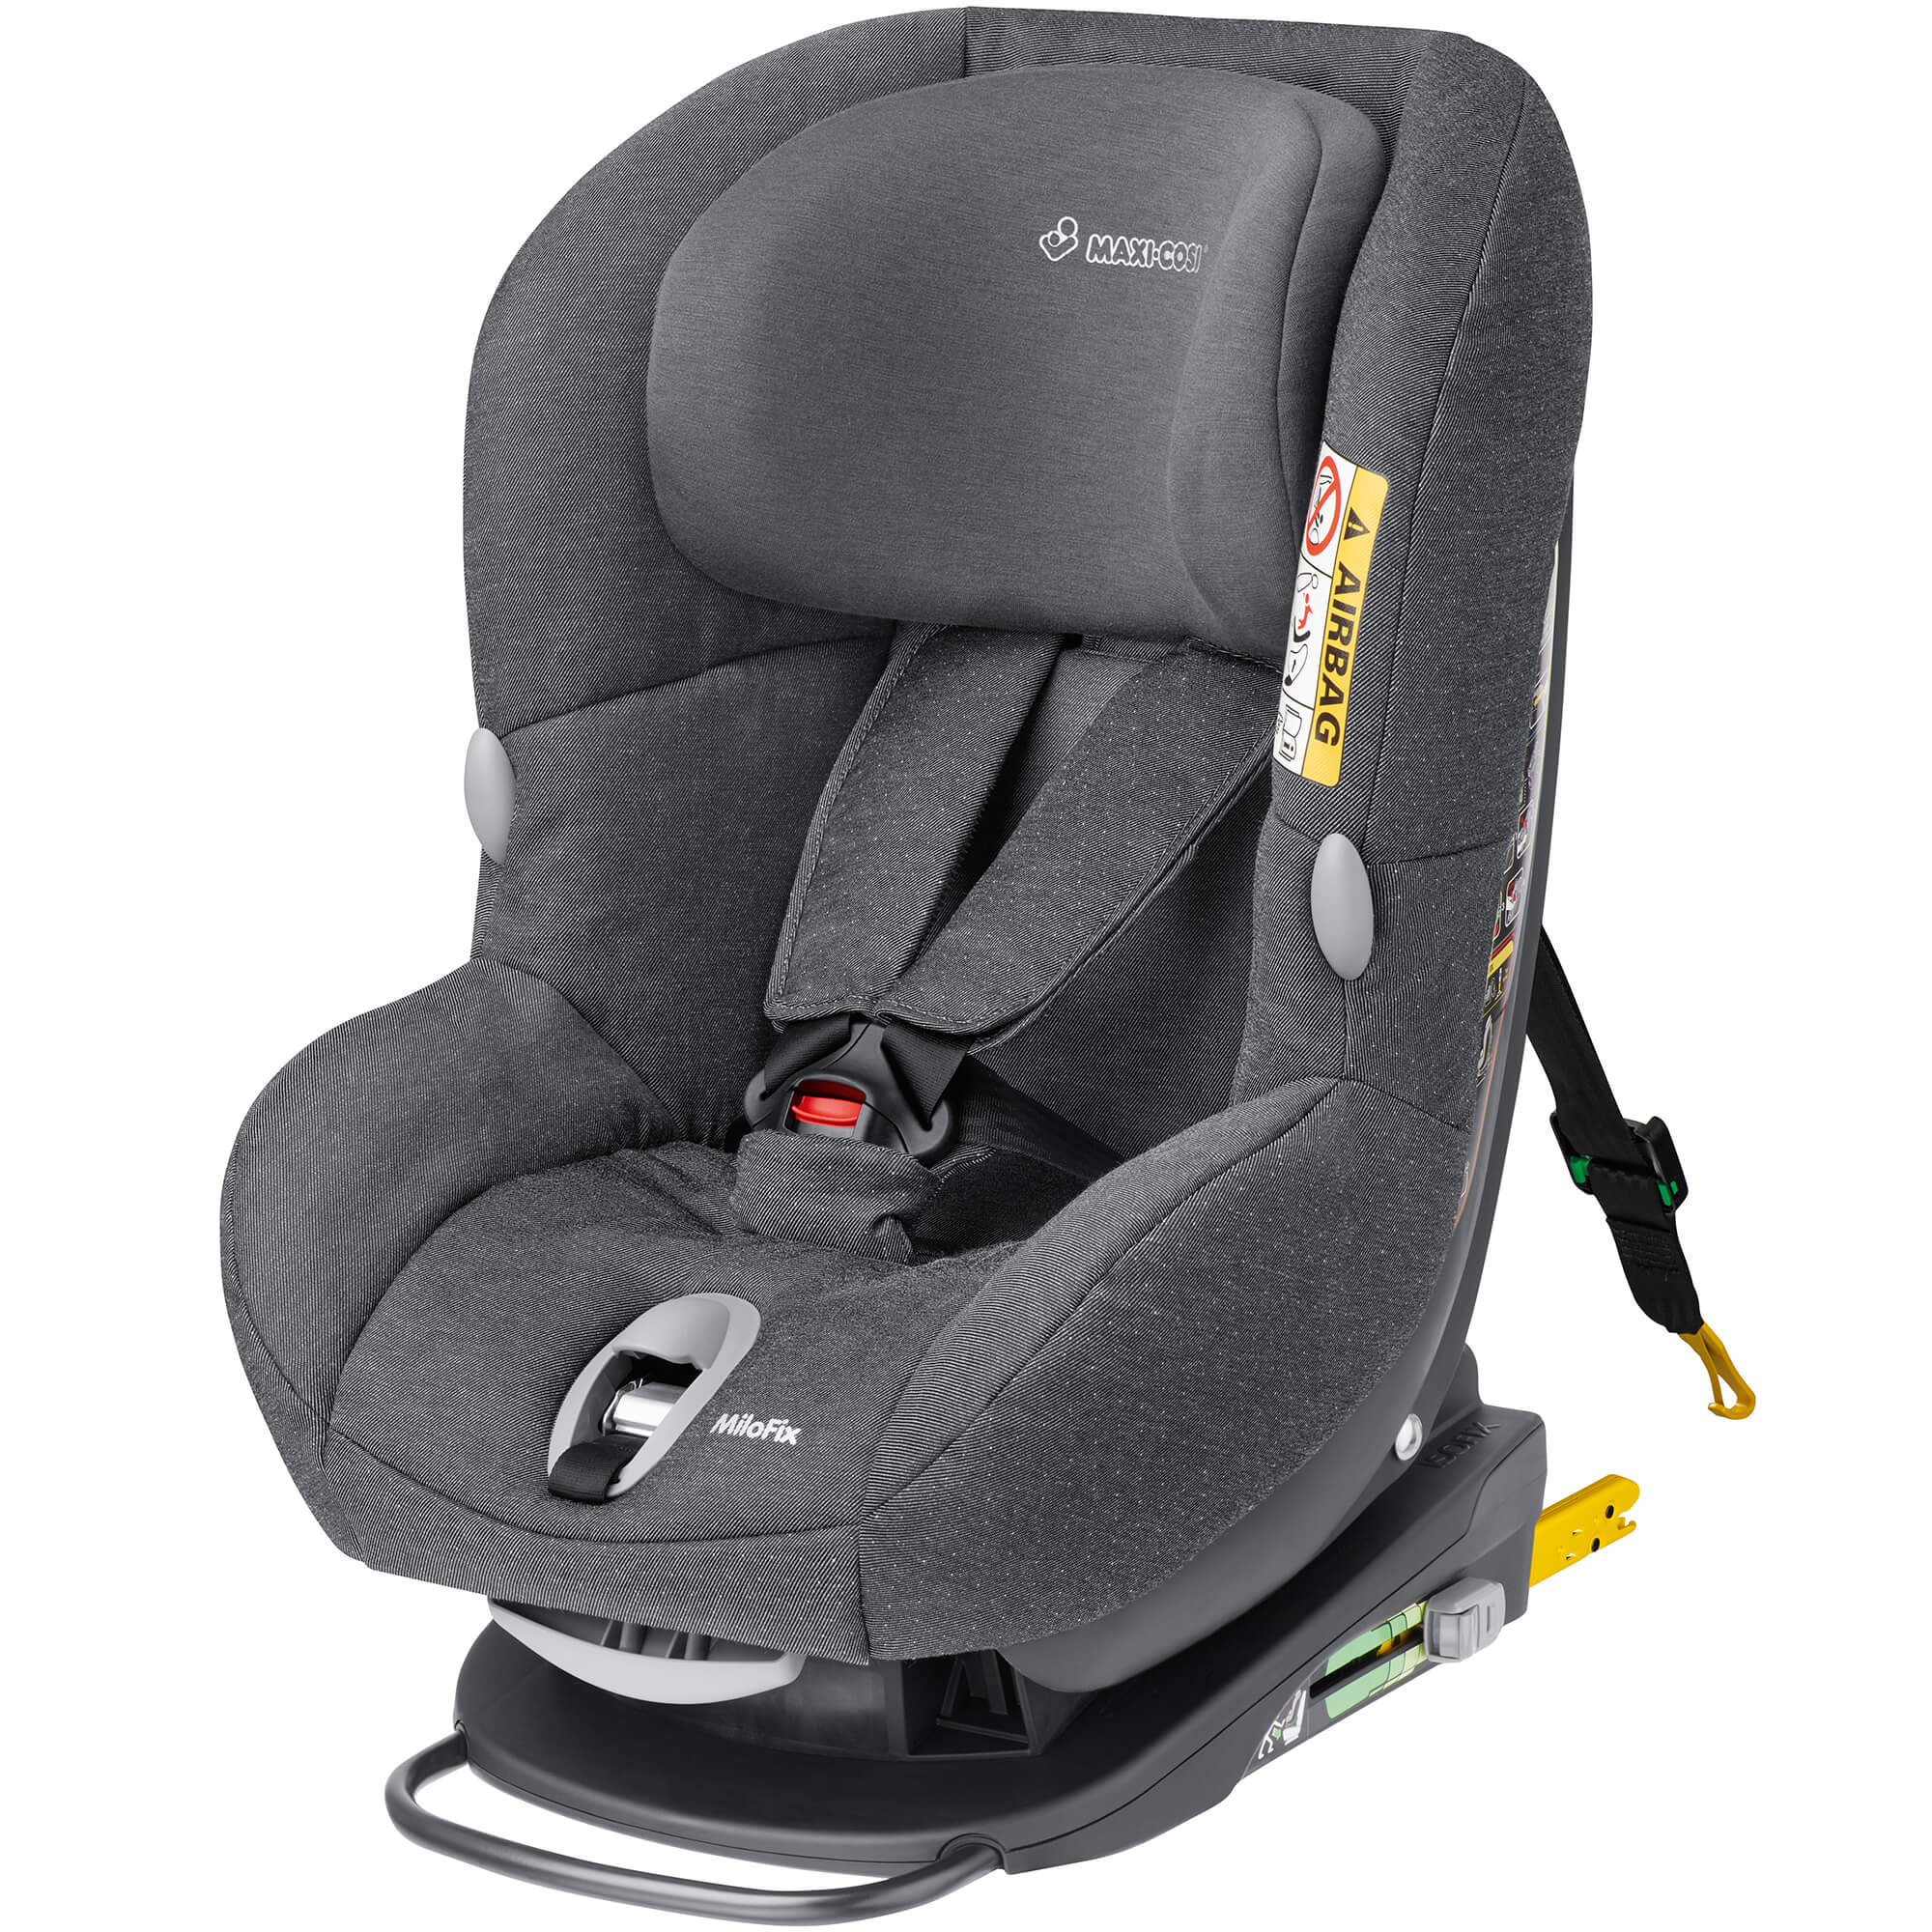 maxi cosi milofix reboard child seat group 1 2 3 sparkling grey. Black Bedroom Furniture Sets. Home Design Ideas